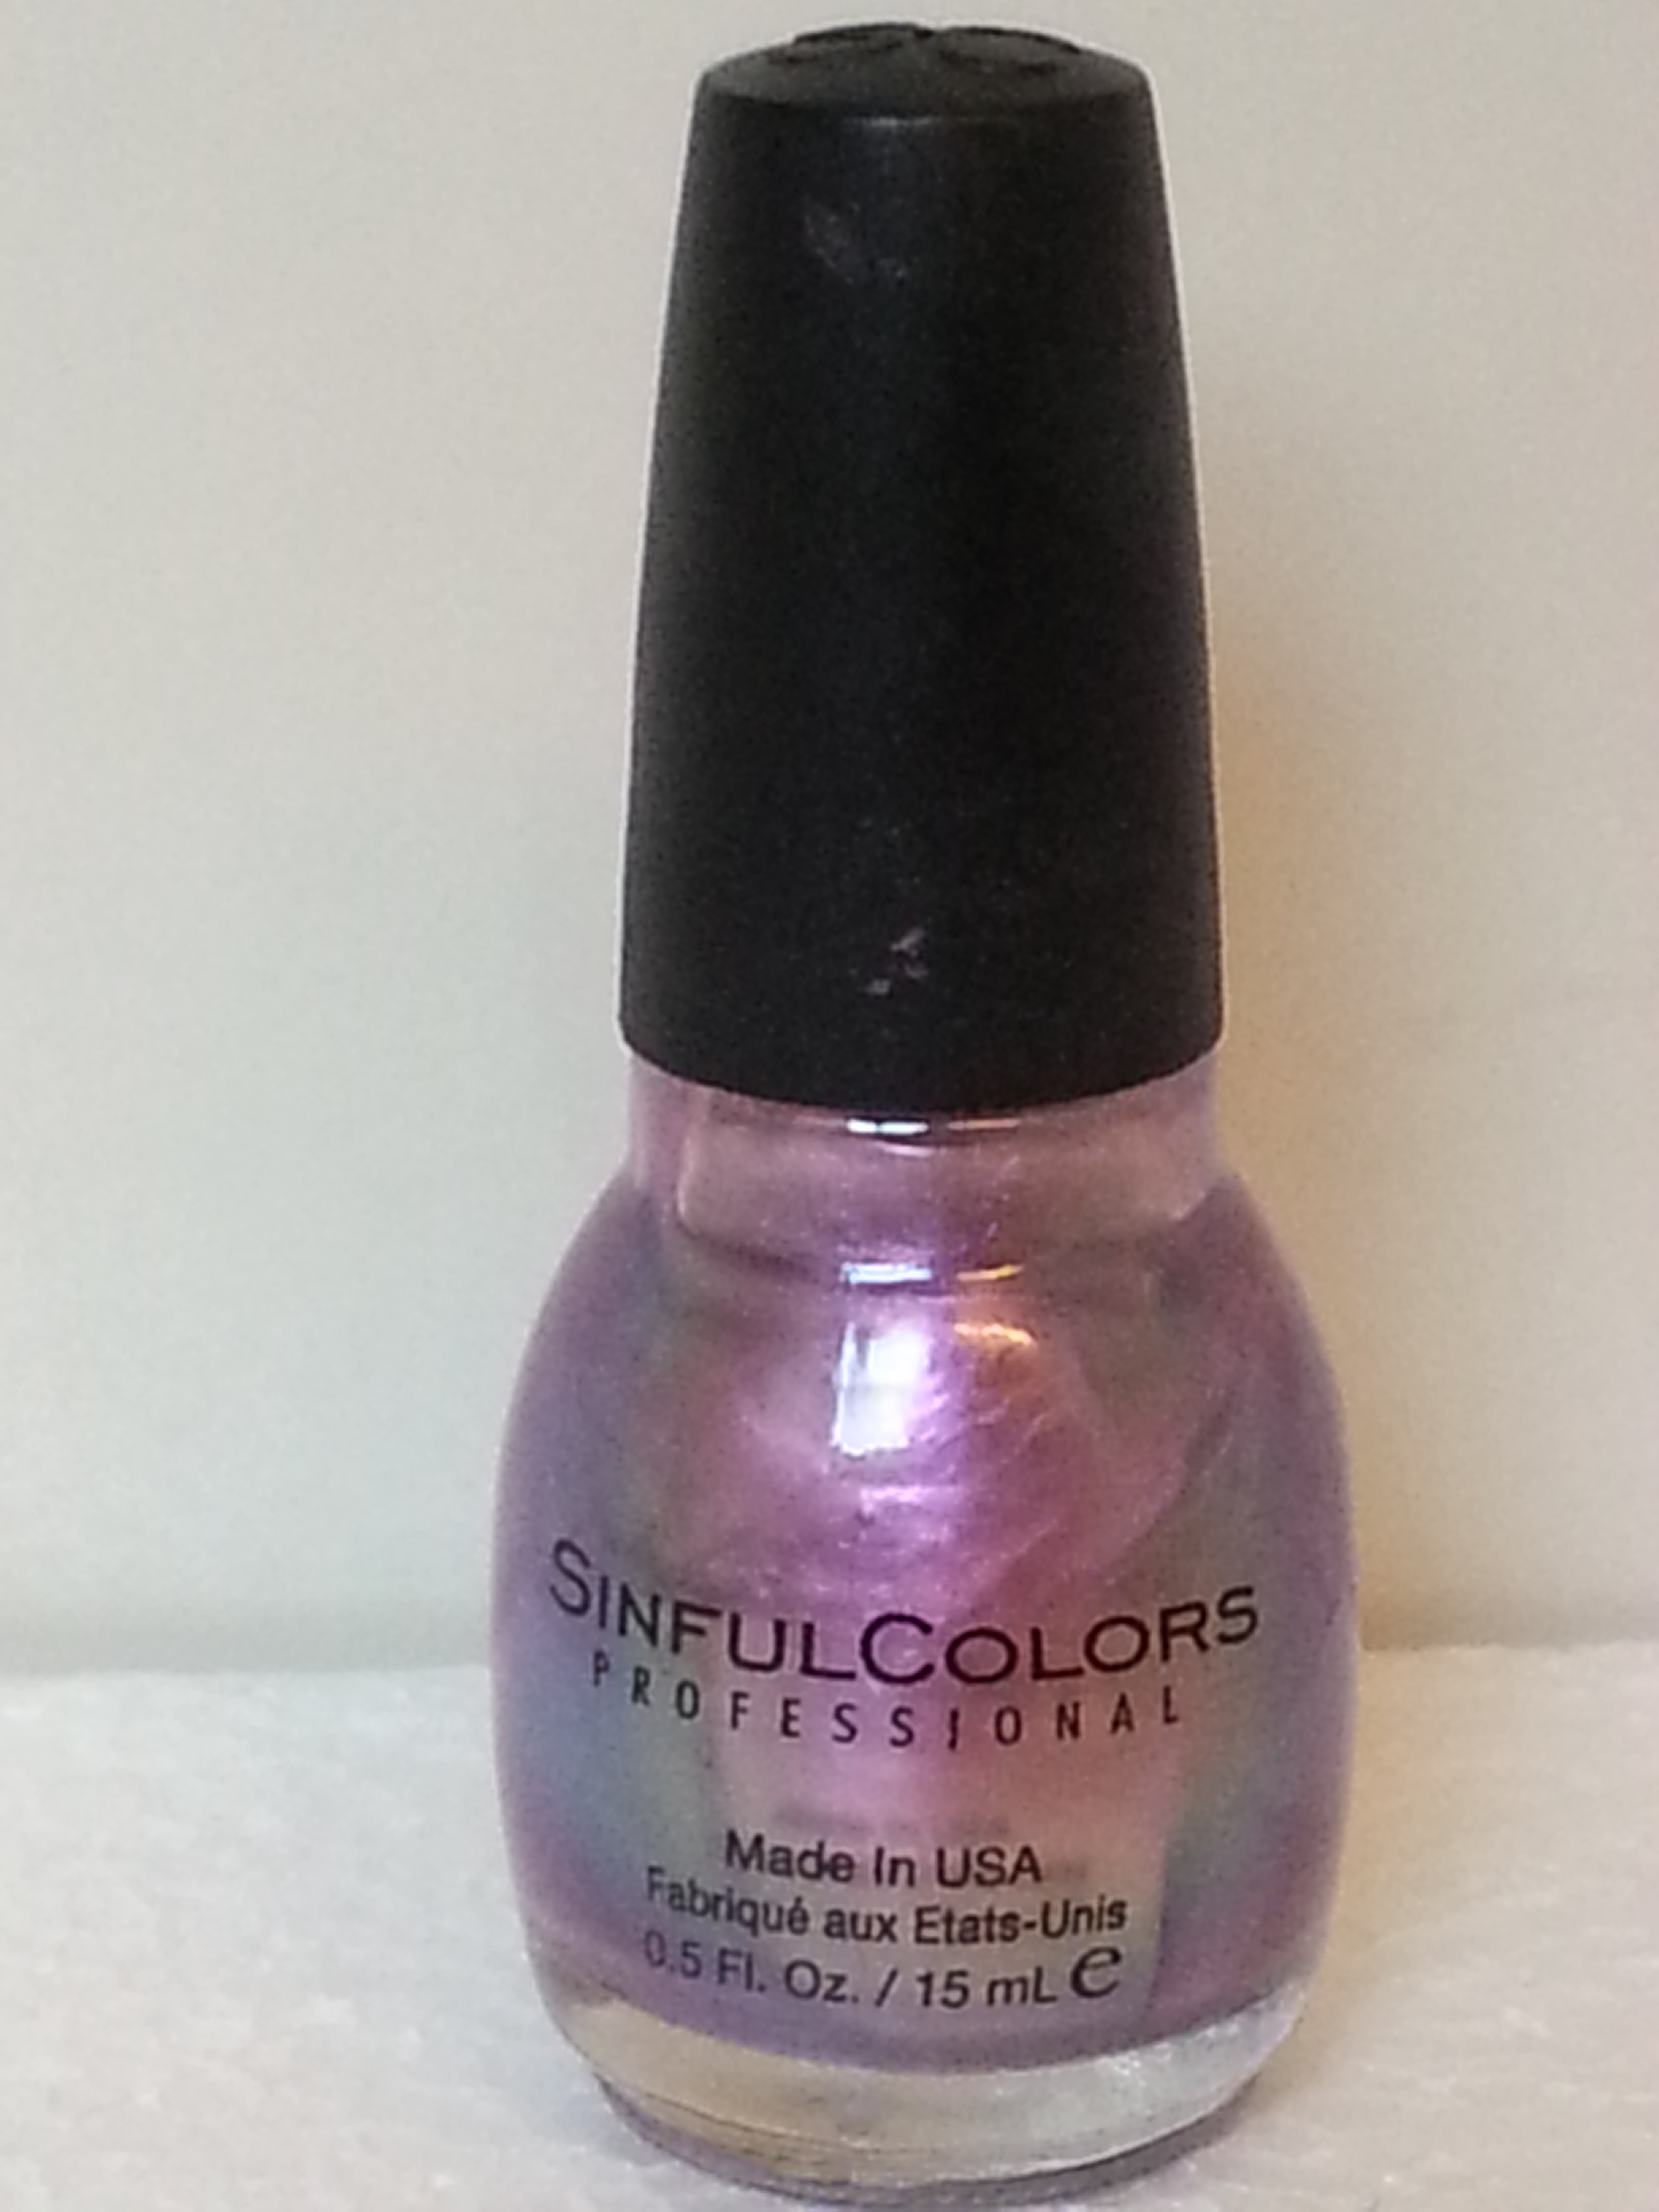 Sinful Colors Professional Nail Polish Review